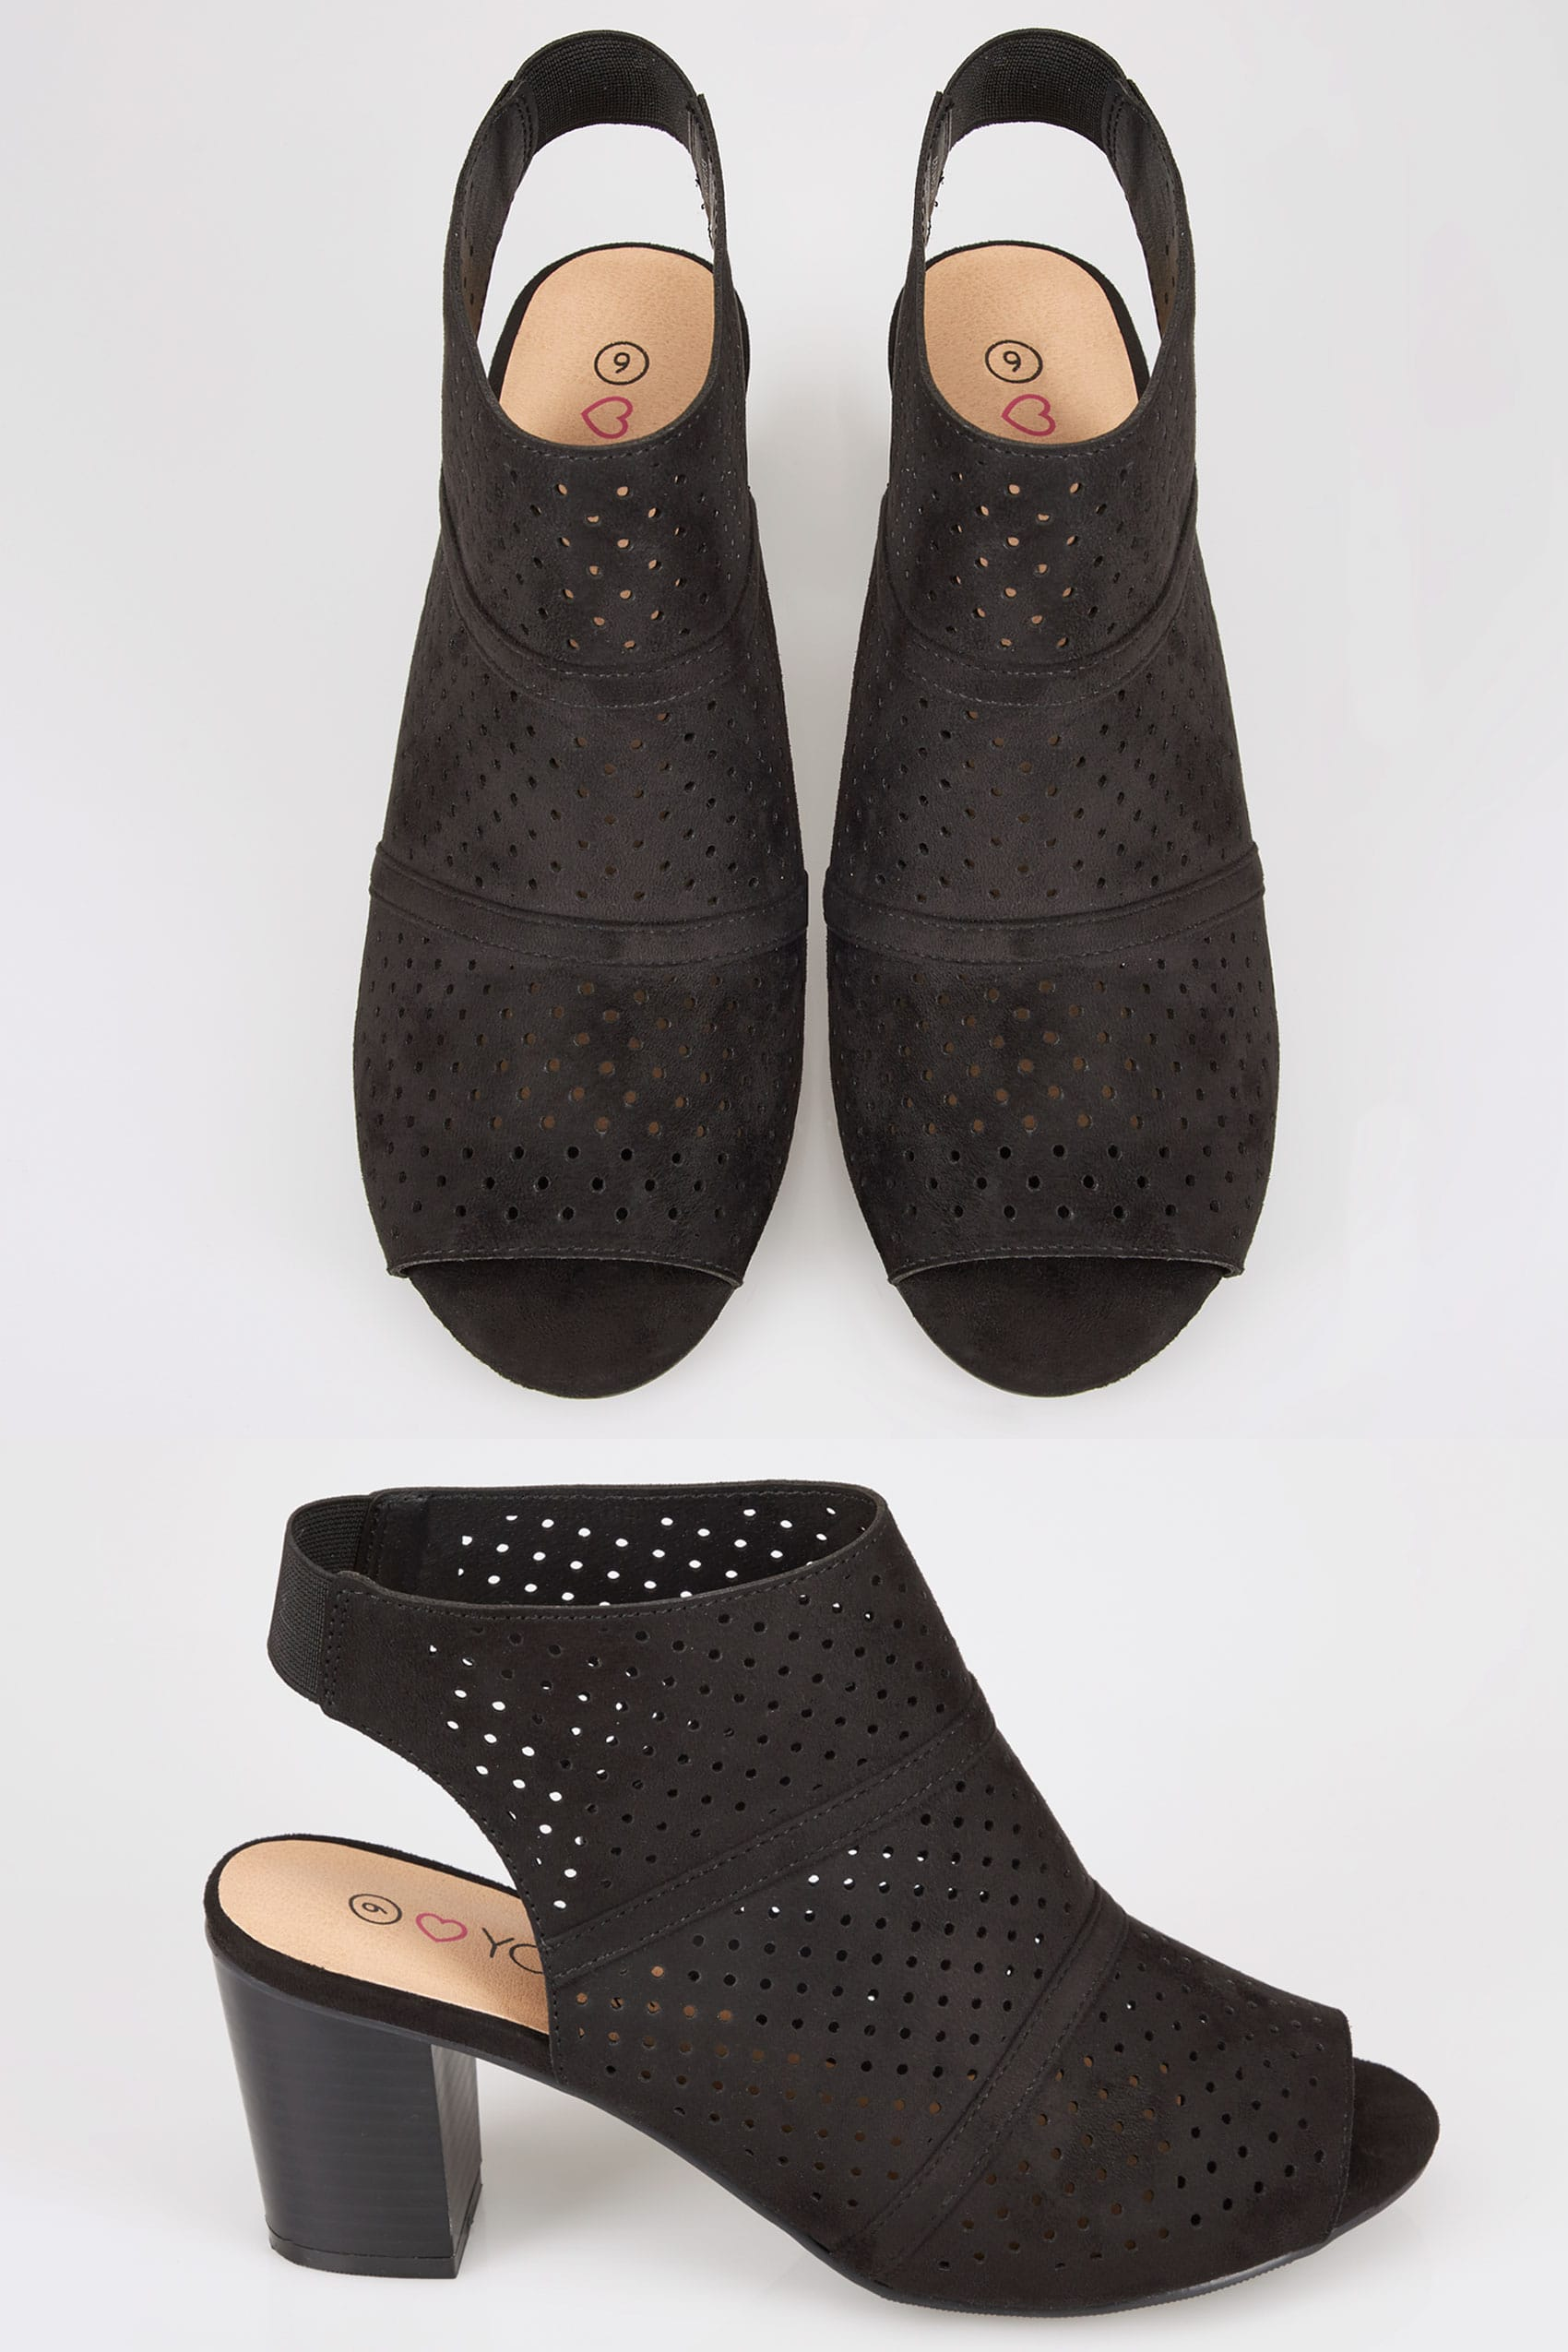 Black Laser Cut Sandals With Block Heel In Eee Fit